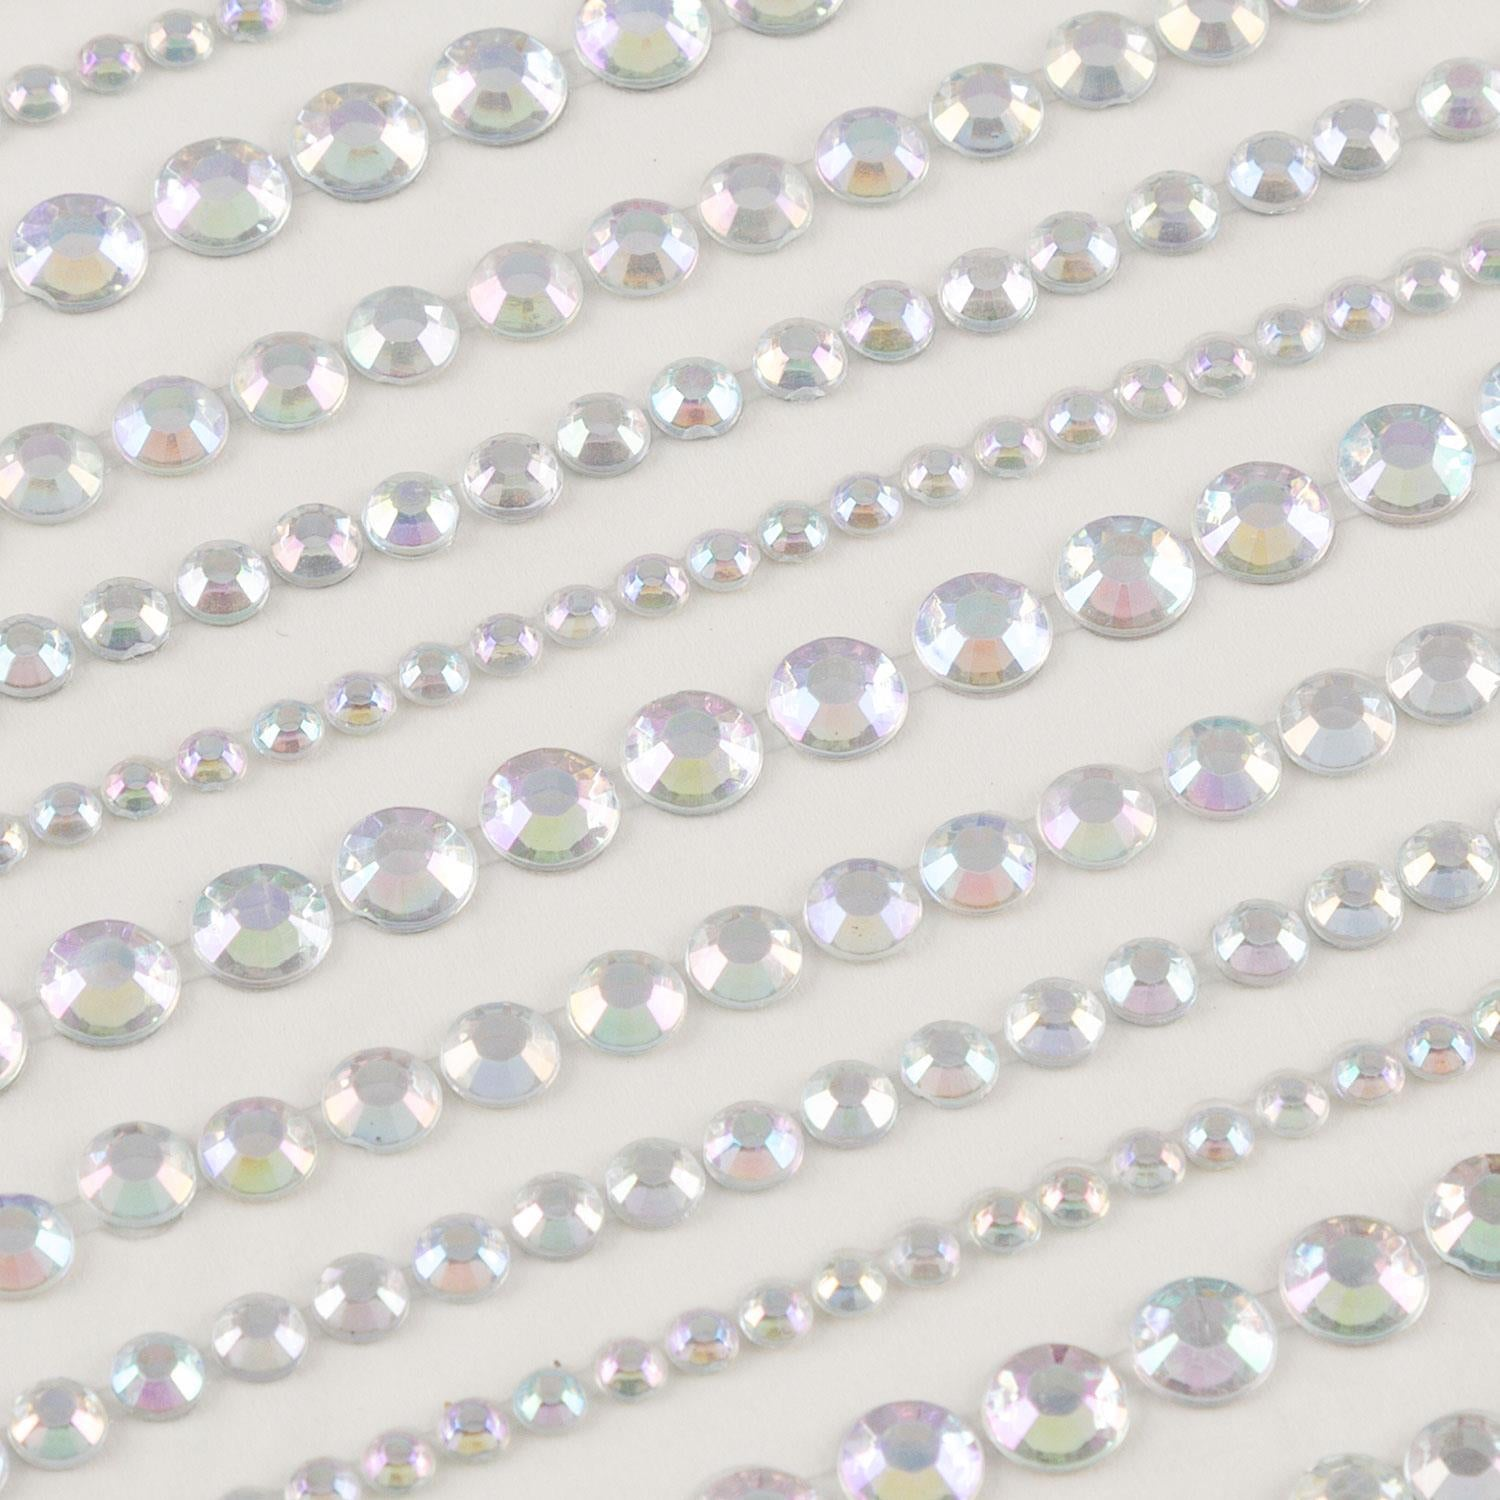 6 sheets of AB and Clear Mixed Size Rhinestone Strips